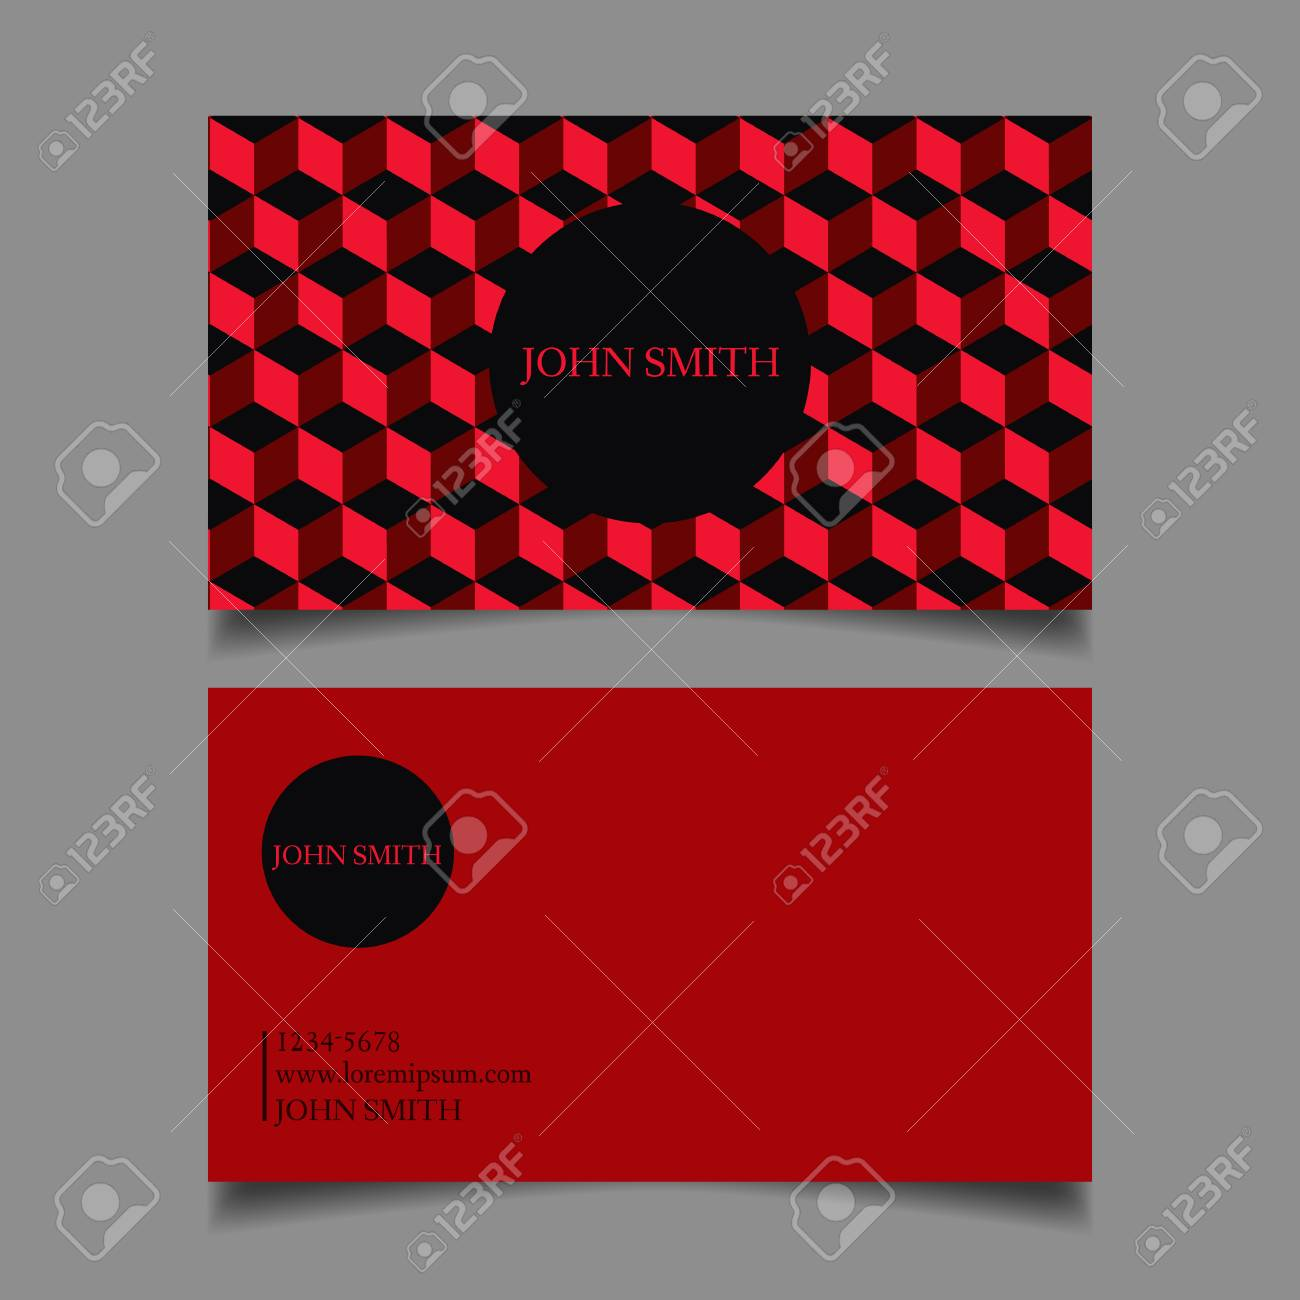 Business Card Template Editable Neat Red Cubes The Design